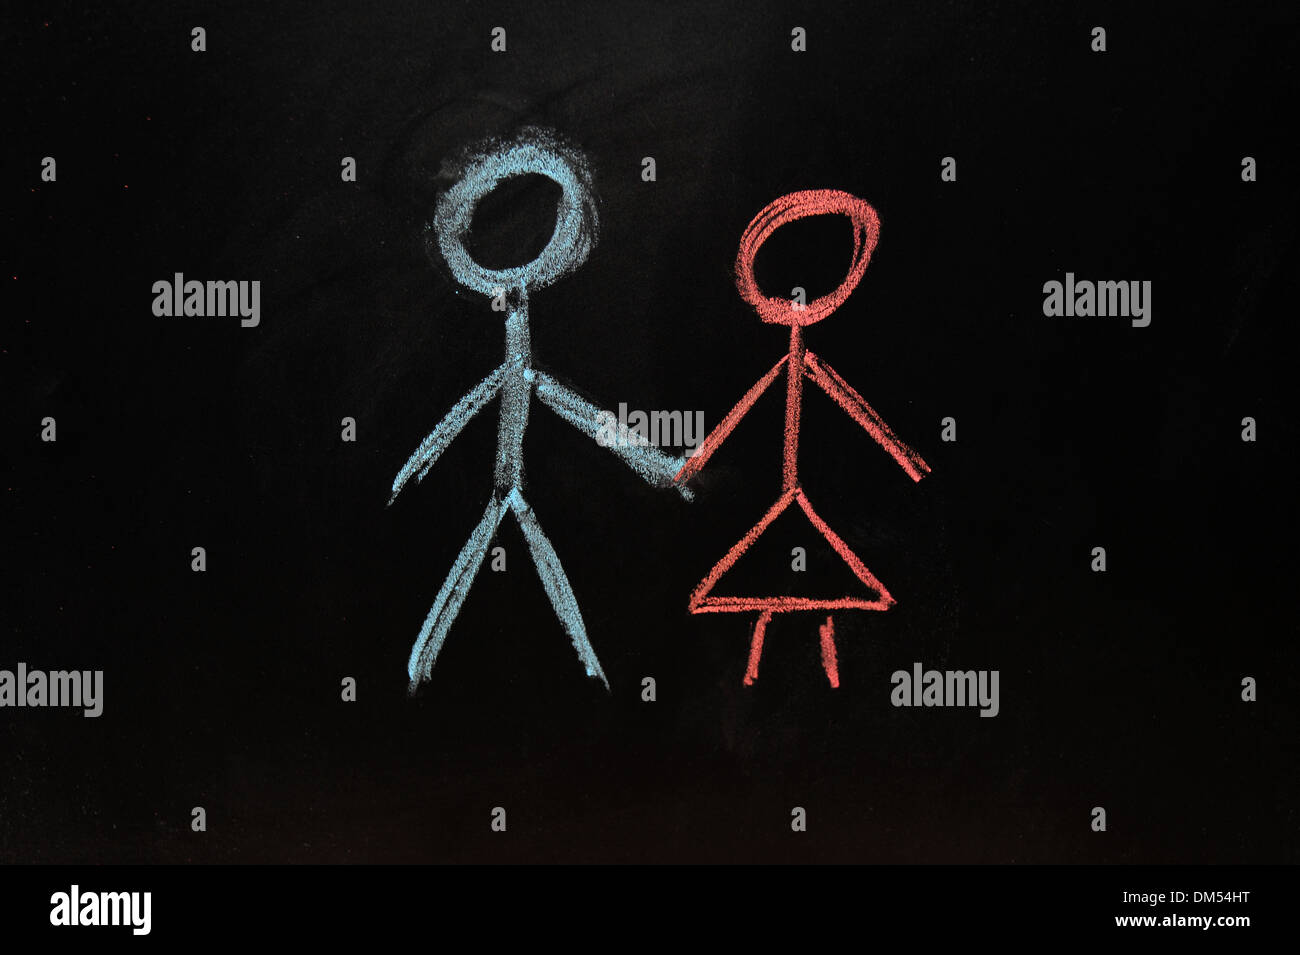 A man and a woman drawn on a blackboard in chalk. - Stock Image